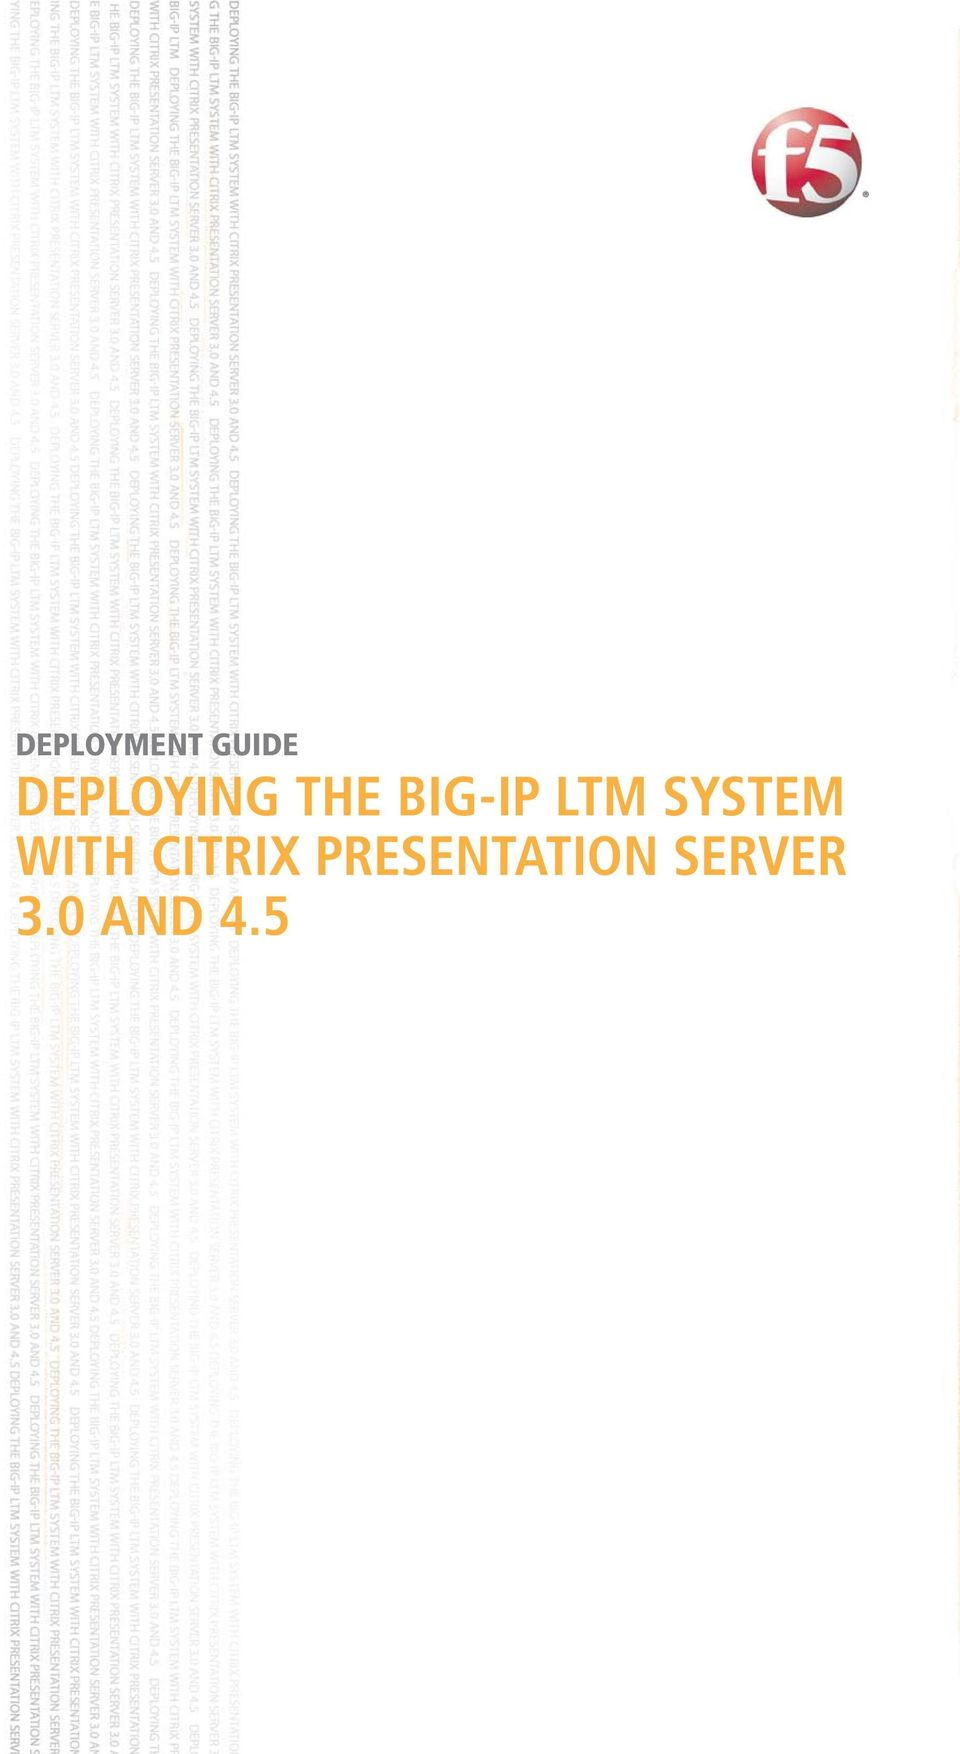 LTM SYSTEM WITH CITRIX